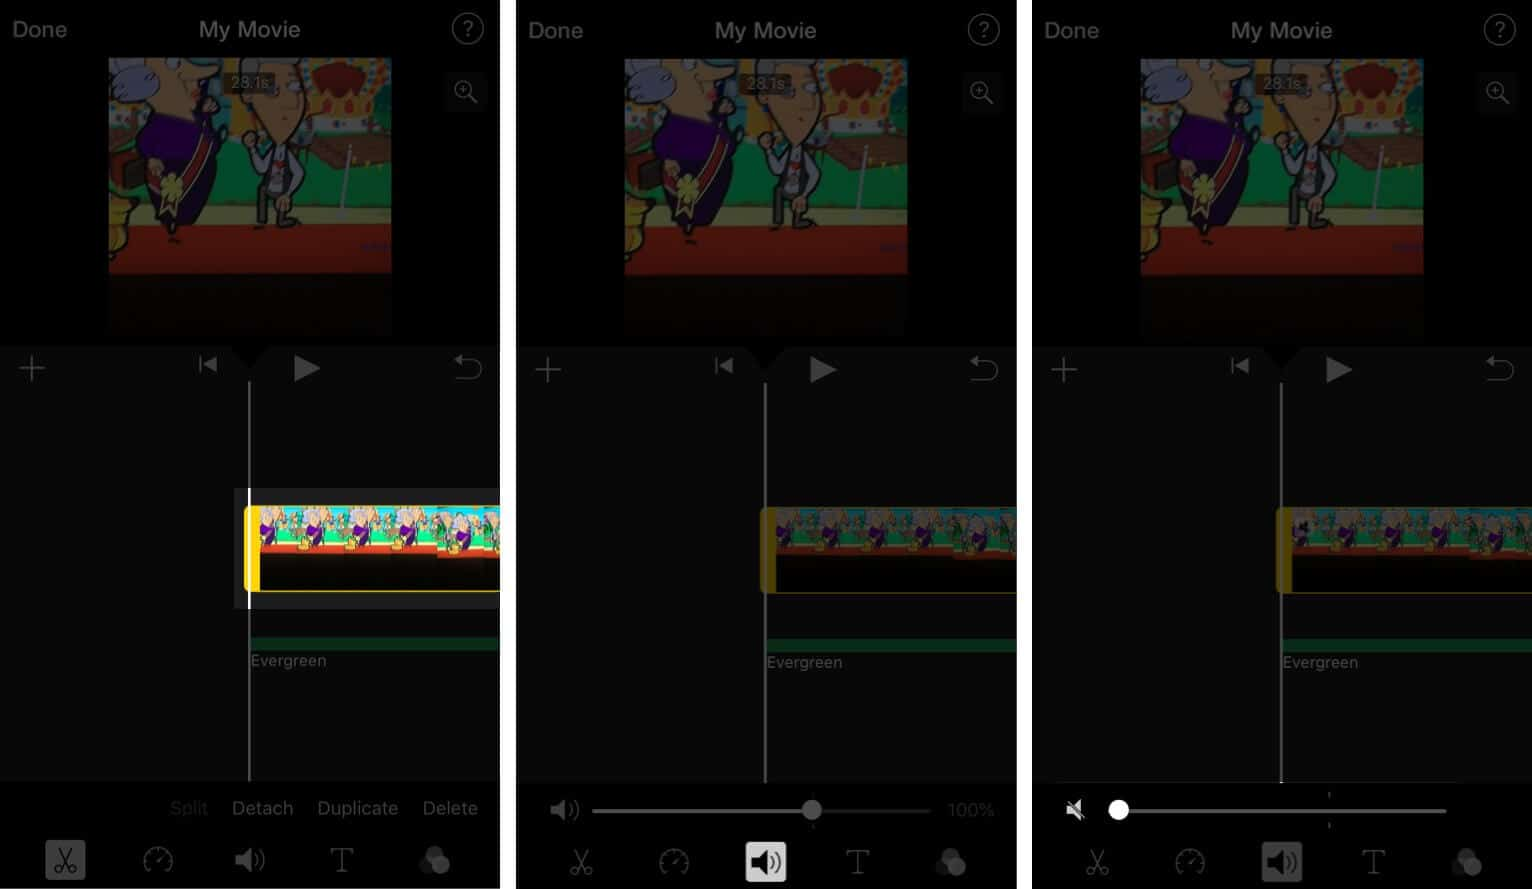 Disable Original Video Sound in iMovie App on iPhone